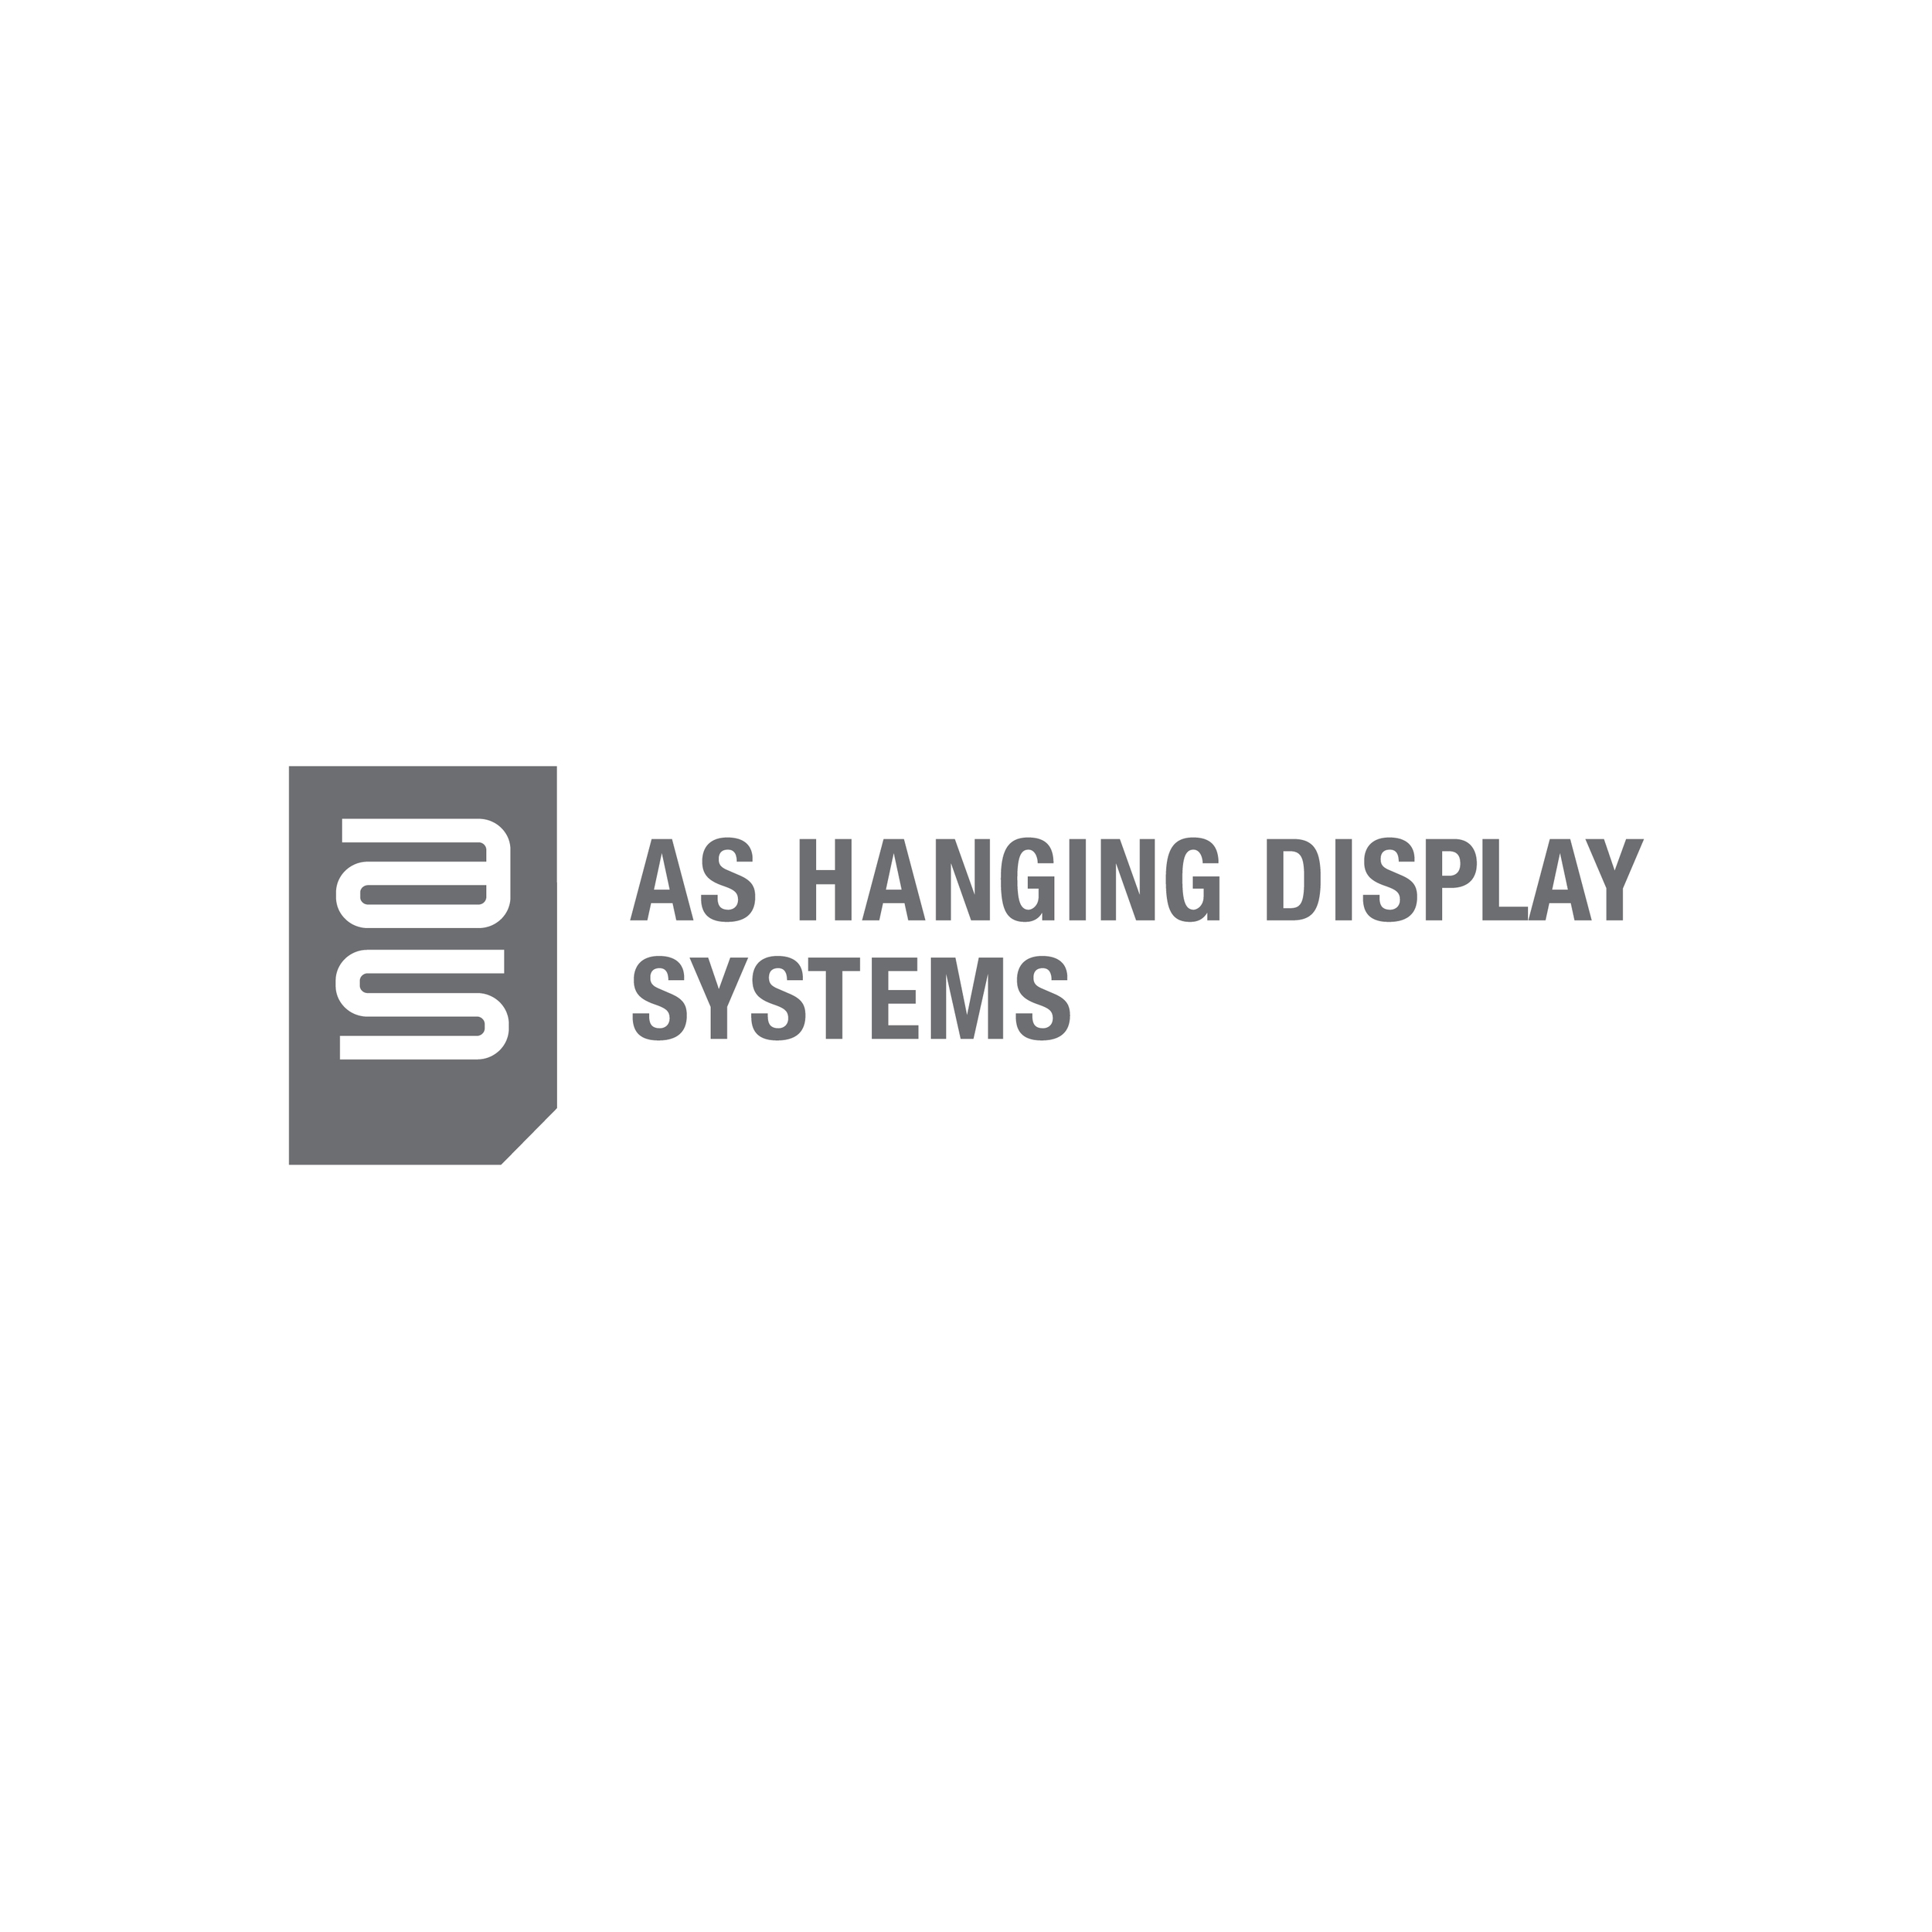 Logo-02-AS Hanging.jpg